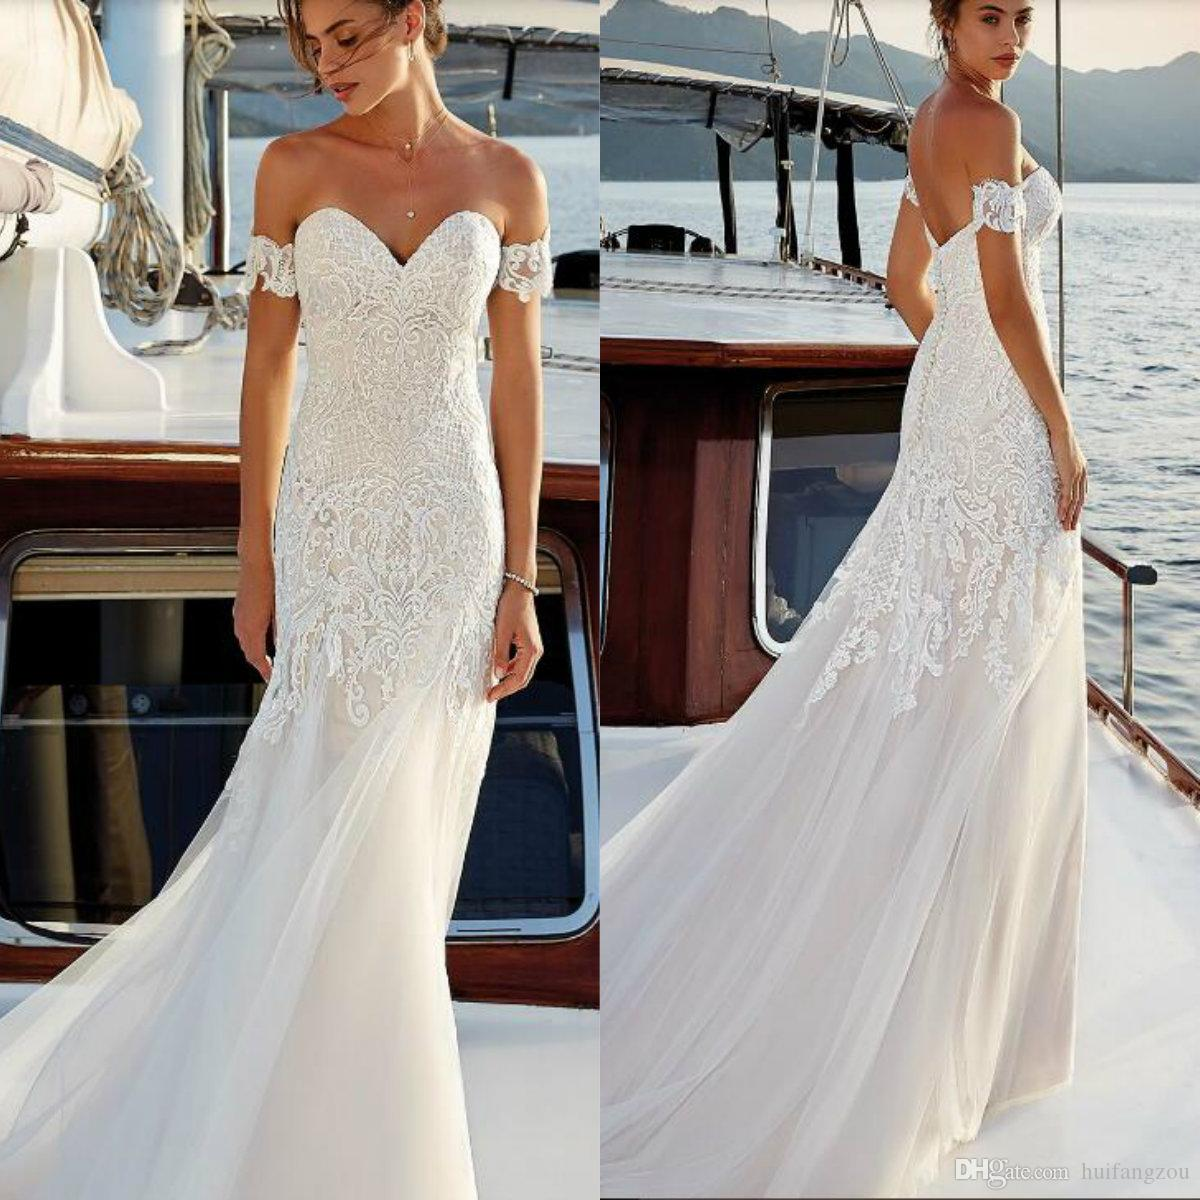 49677baa87c7 Eddy K. Dreams 2019 Wedding Dress Charming Lace Off Shoulder Applique Tulle  Sweep Train Backless Wedding Dresses Bride Dresses Dress For Wedding From  ...